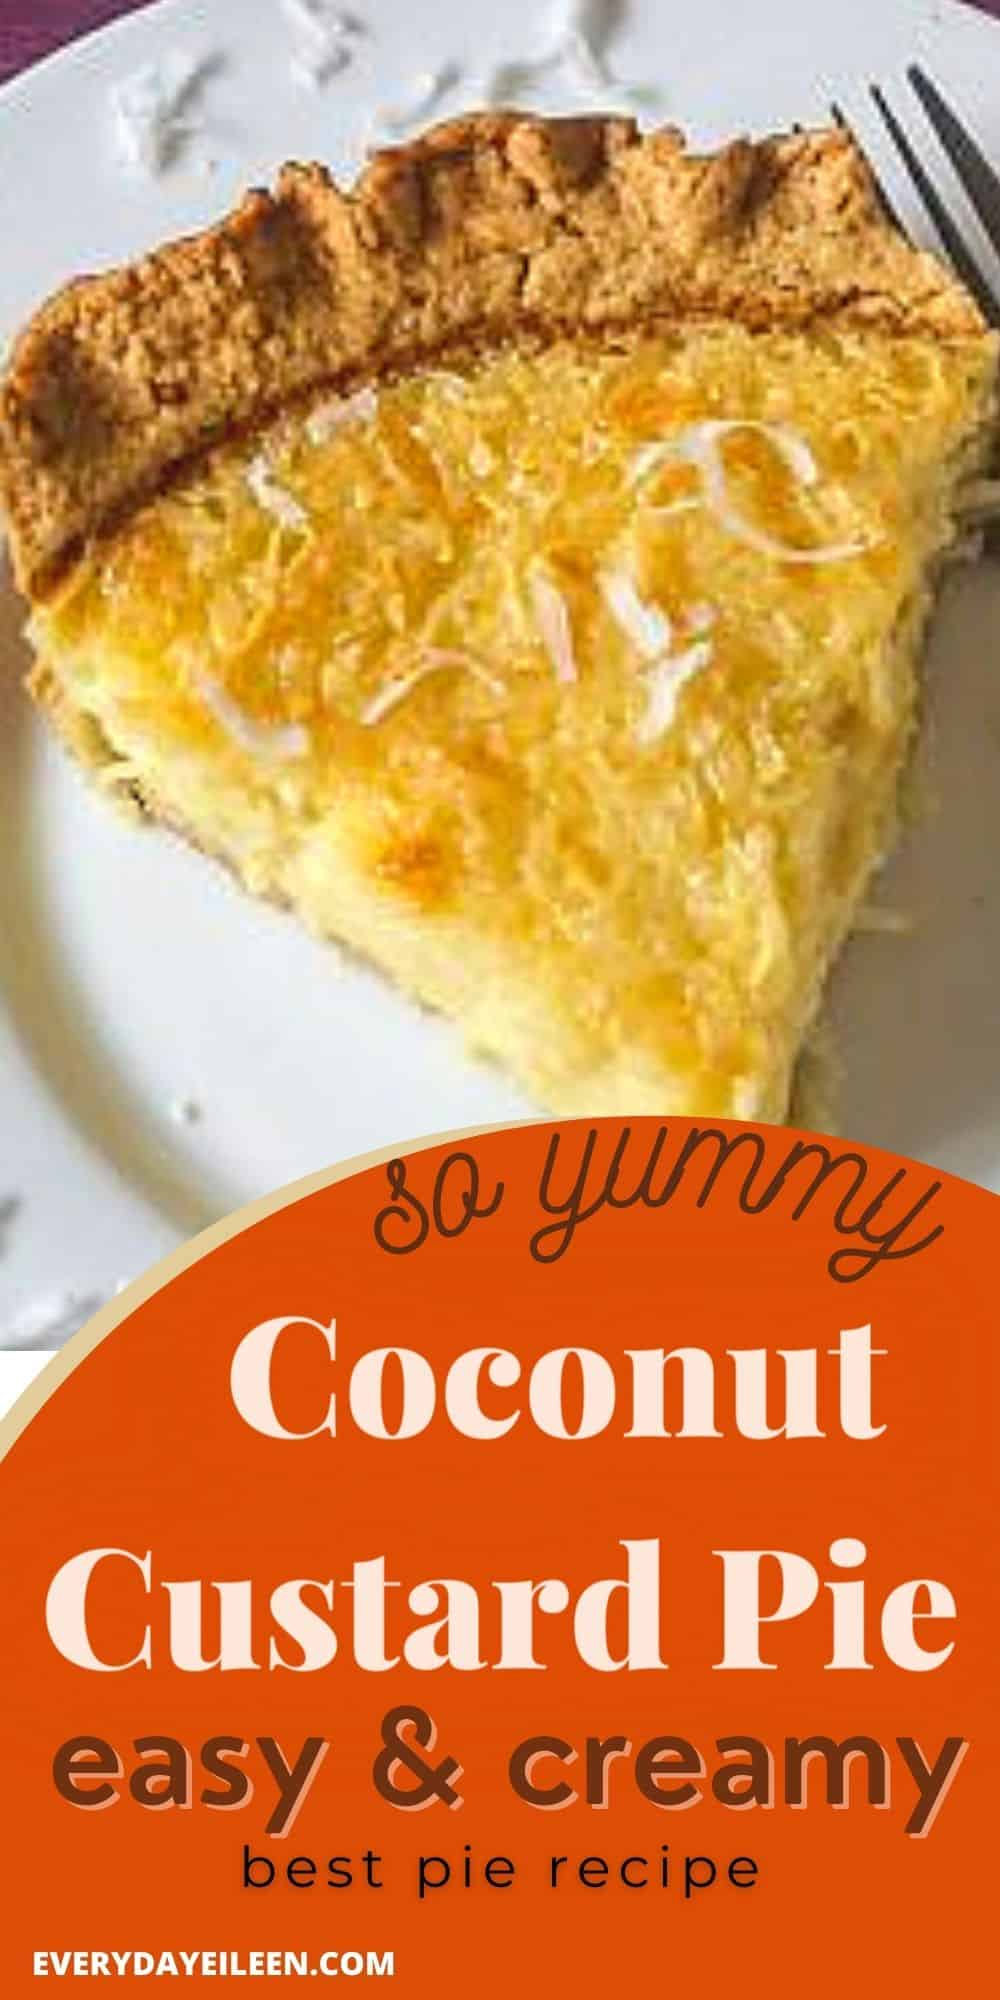 Coconut Custard Pie, a delicious pie recipe made with either a homemade or store bought pie crust.  The custard is loaded with coconut flavors from cream of coconut, coconut flakes, and coconut extract. Perfect for dessert, Mothers Day, Thanksgiving, and Christmas. via @/everydayeileen/